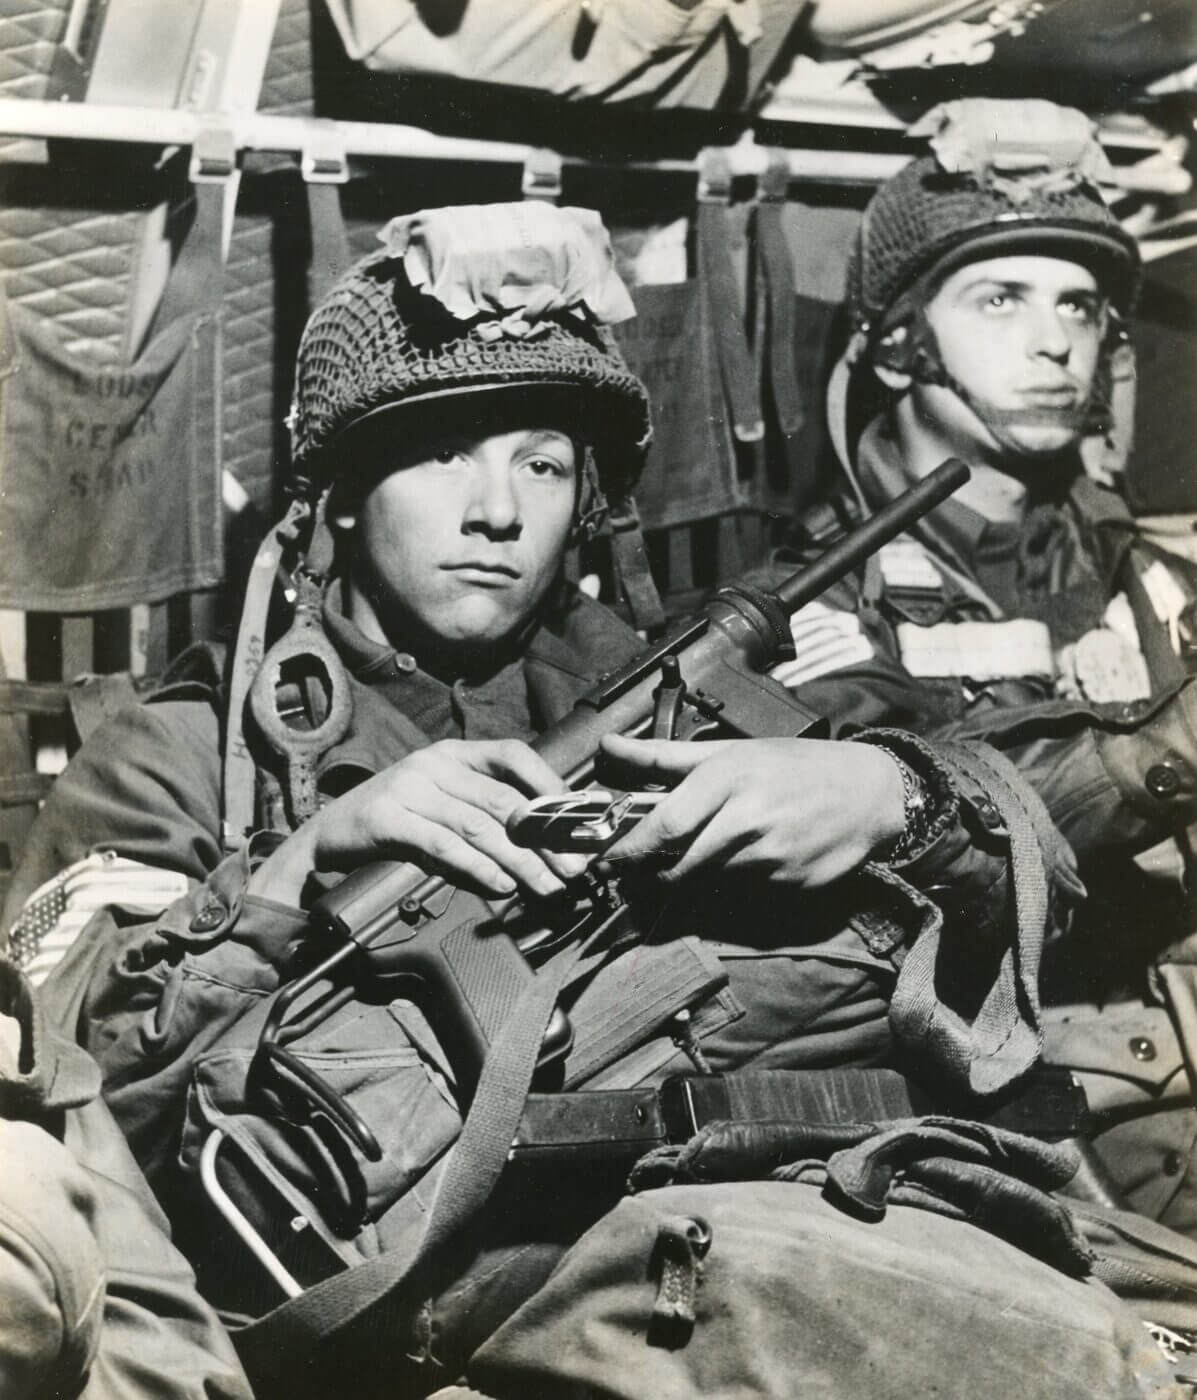 M3 submachine gun handled by paratrooper en route to Normandy, June 1944